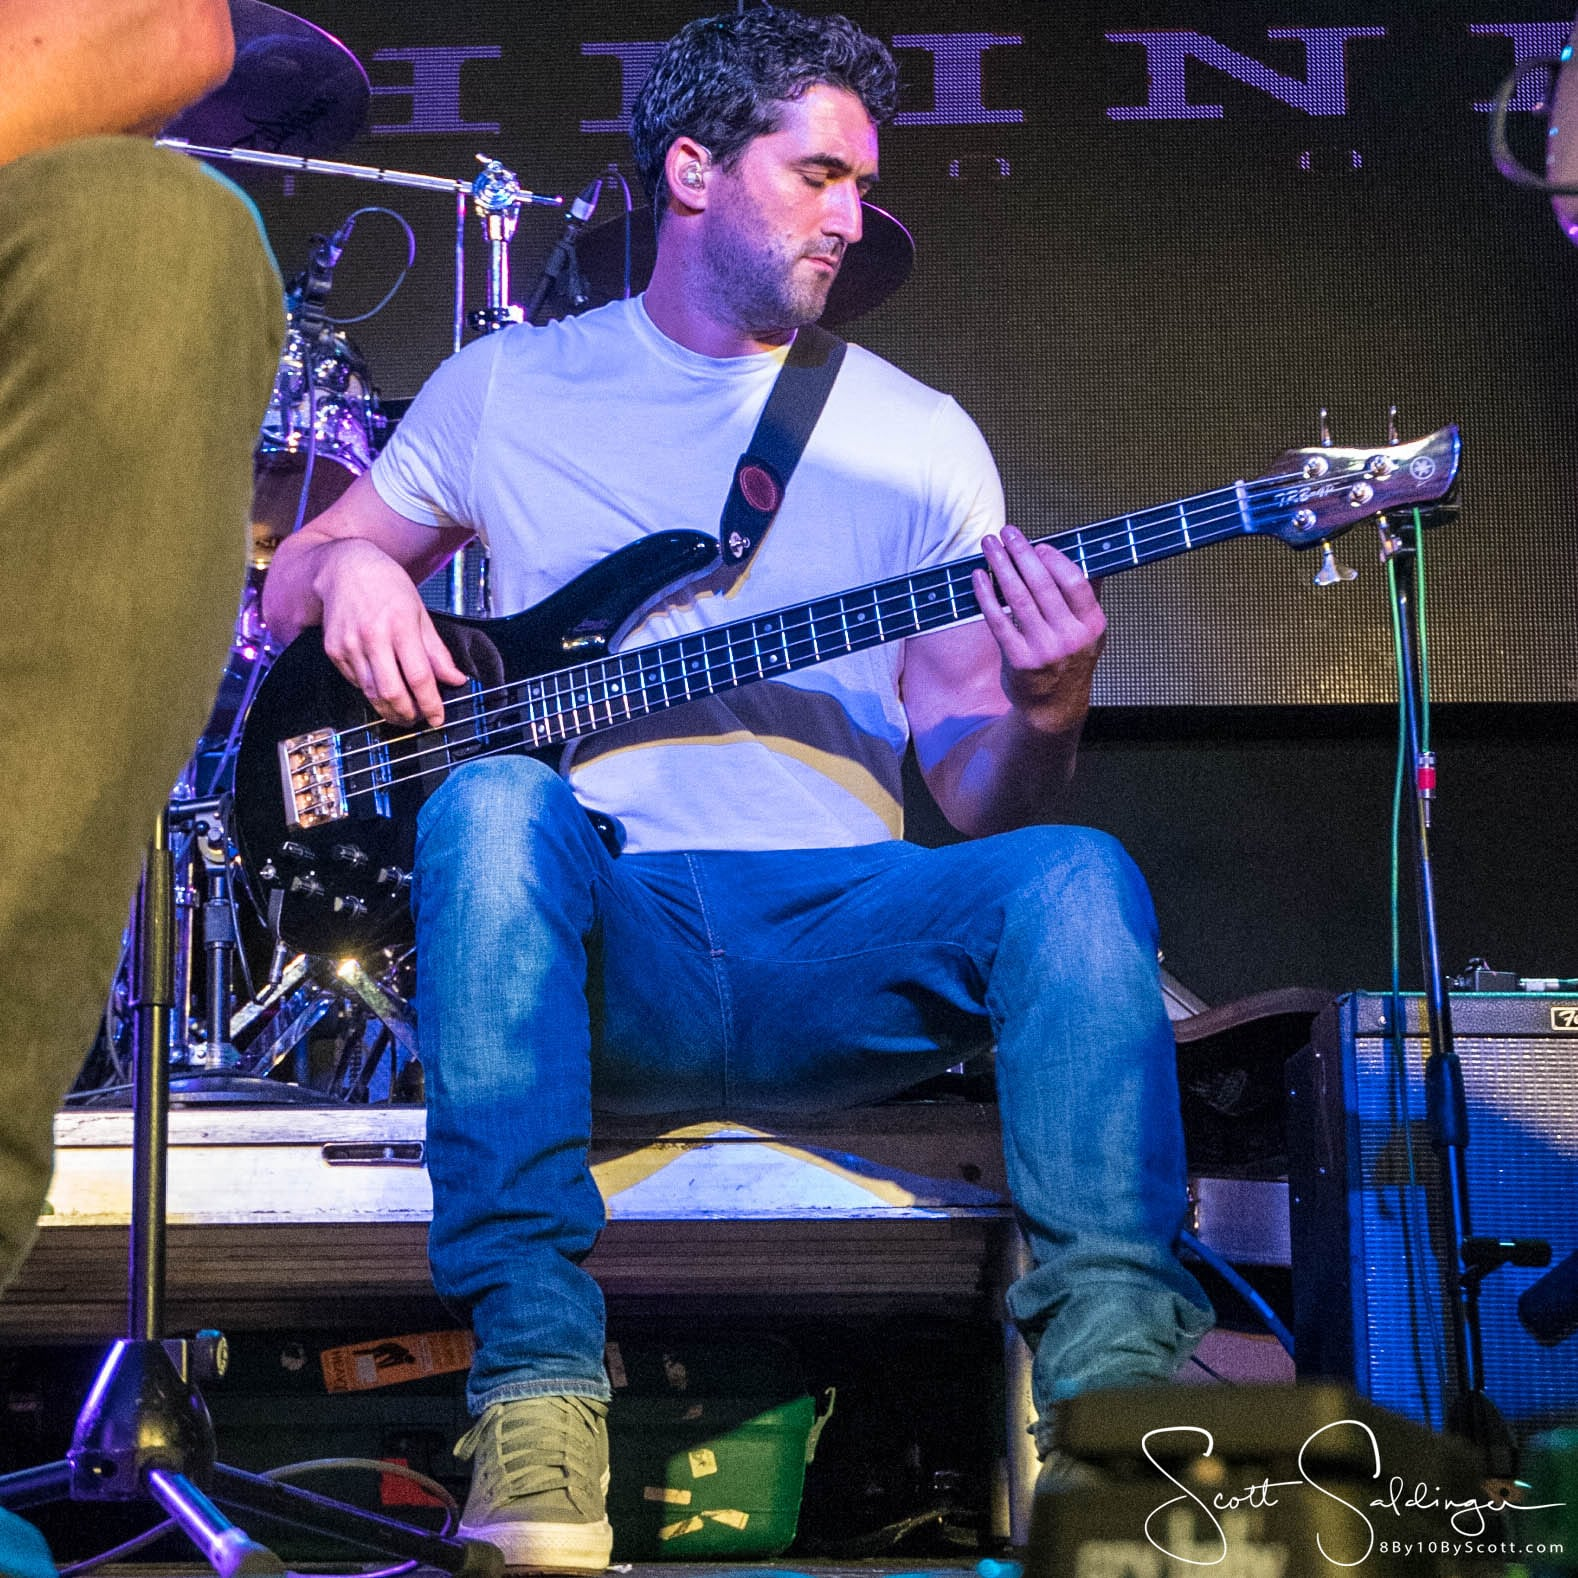 Luke_Sitting_Bass_SQ